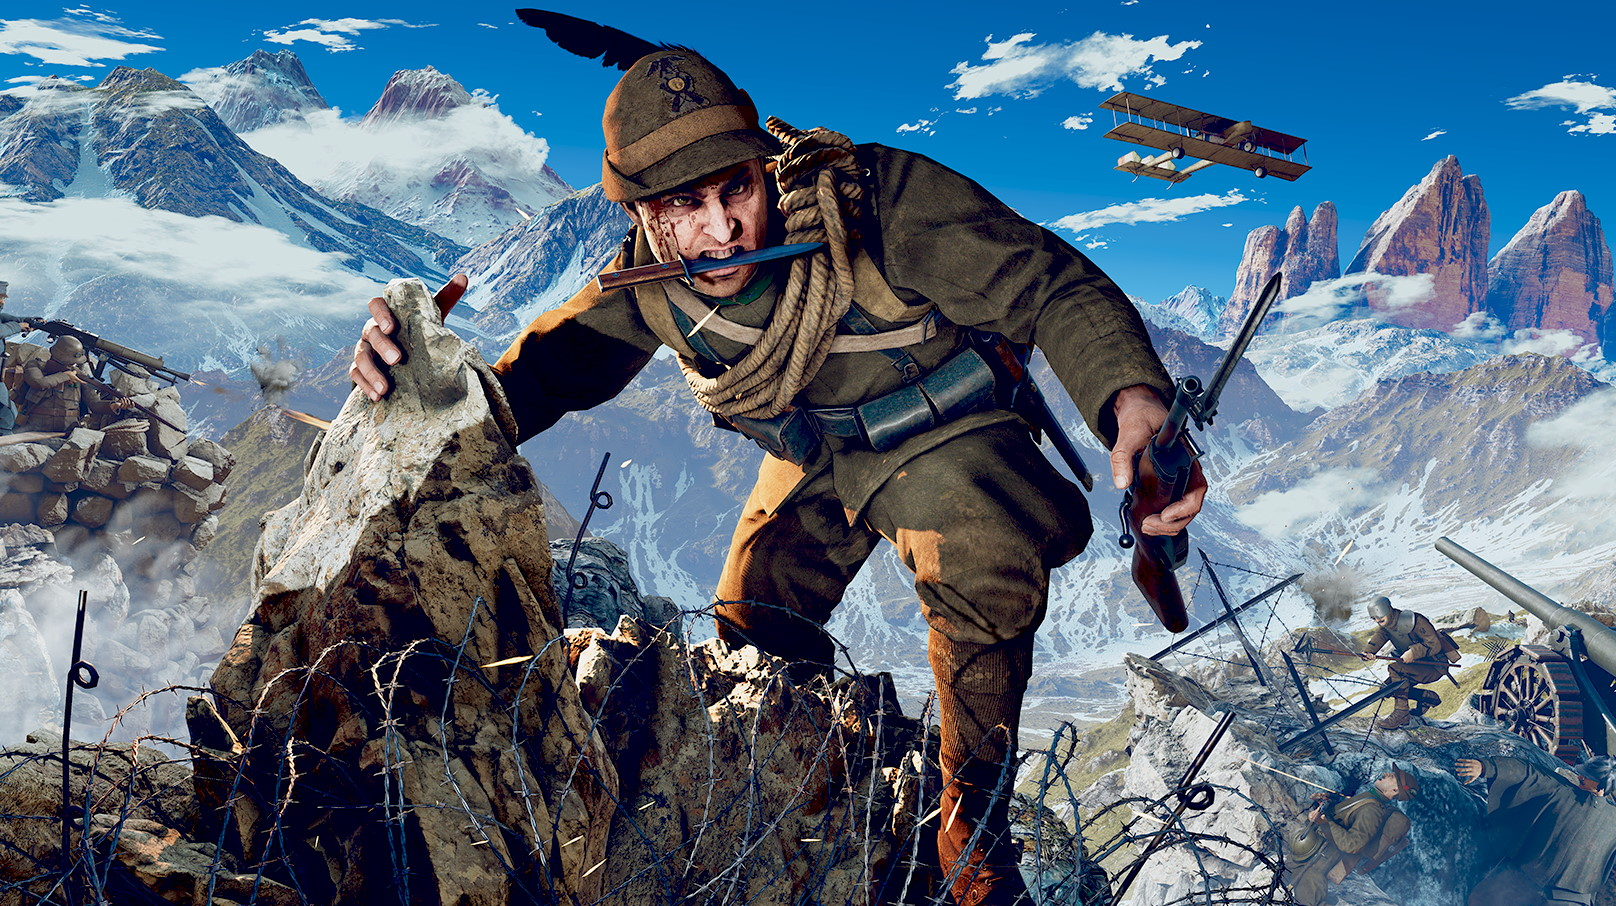 Verdun studios reveal a new First World War shooter set in the Alps